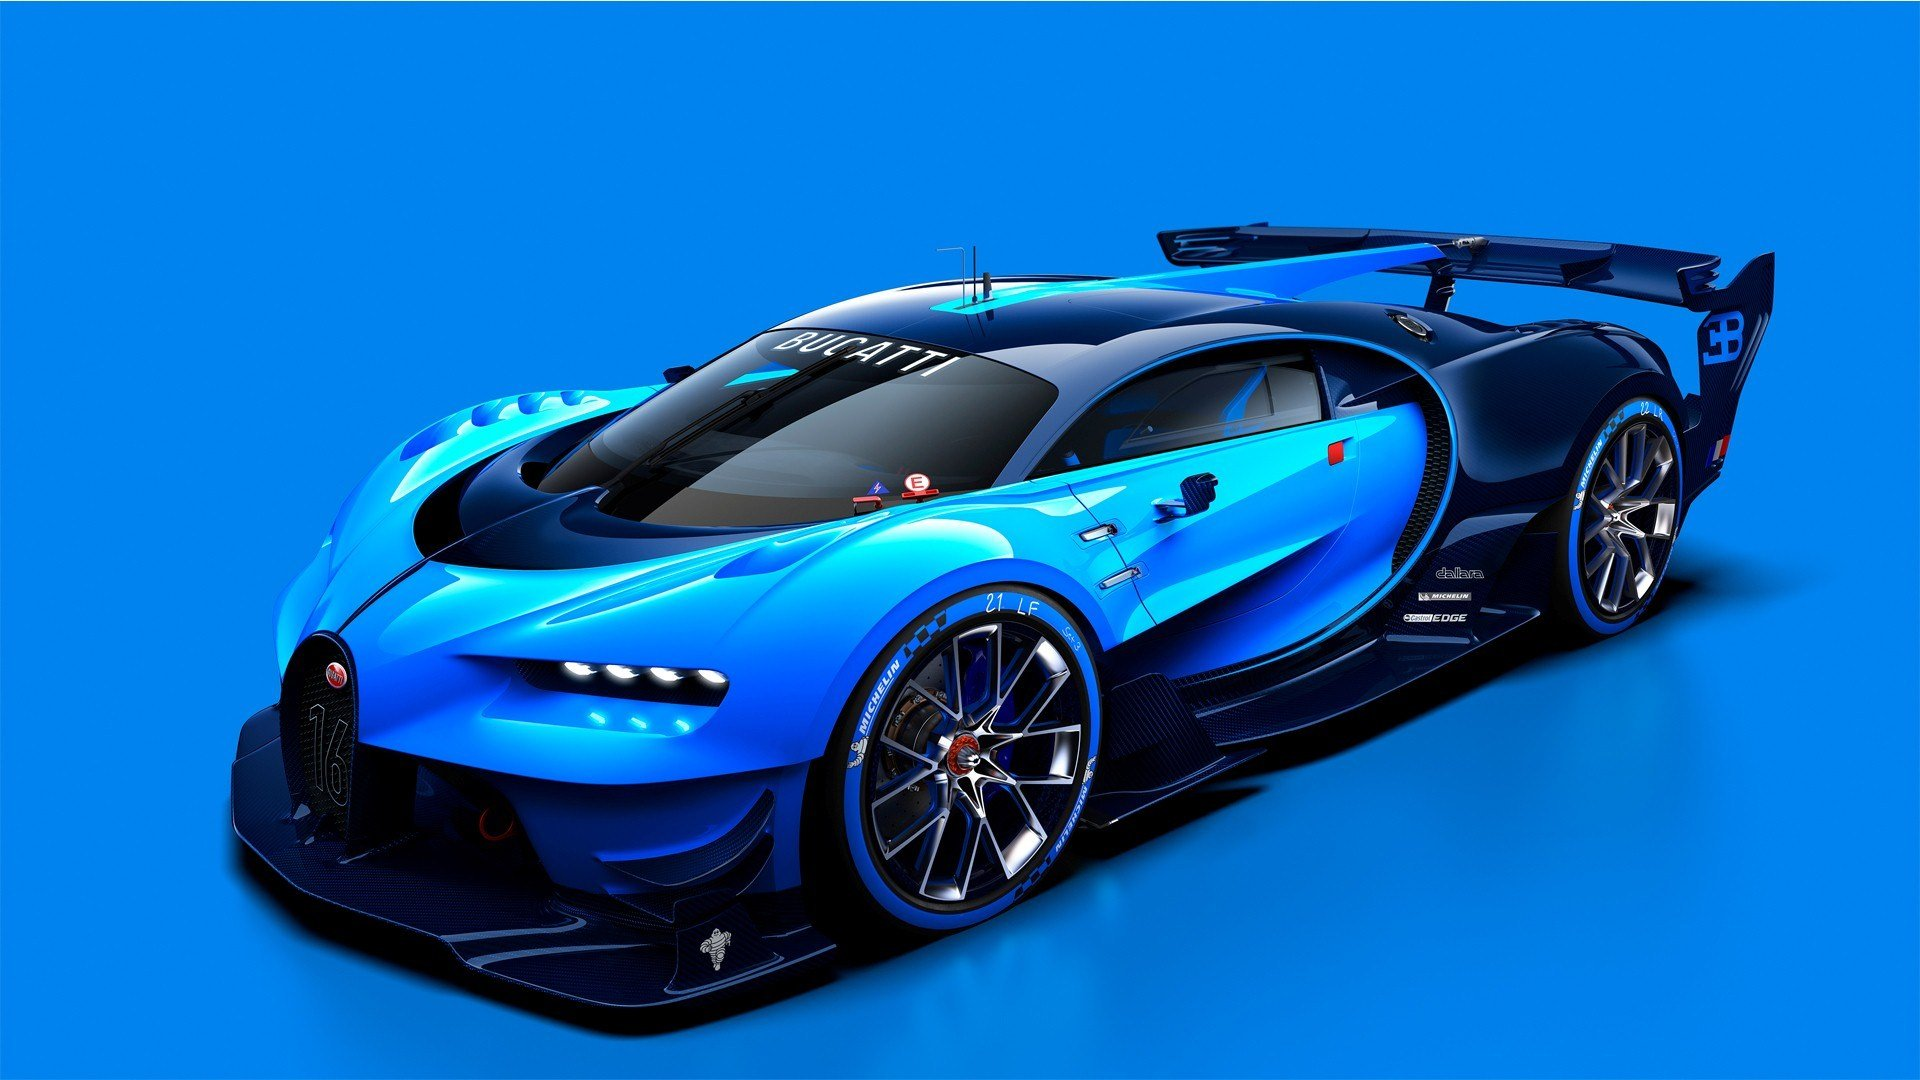 Latest New Bugatti Chiron Blue Luxury Car Hd Wallpapers Hd Free Download